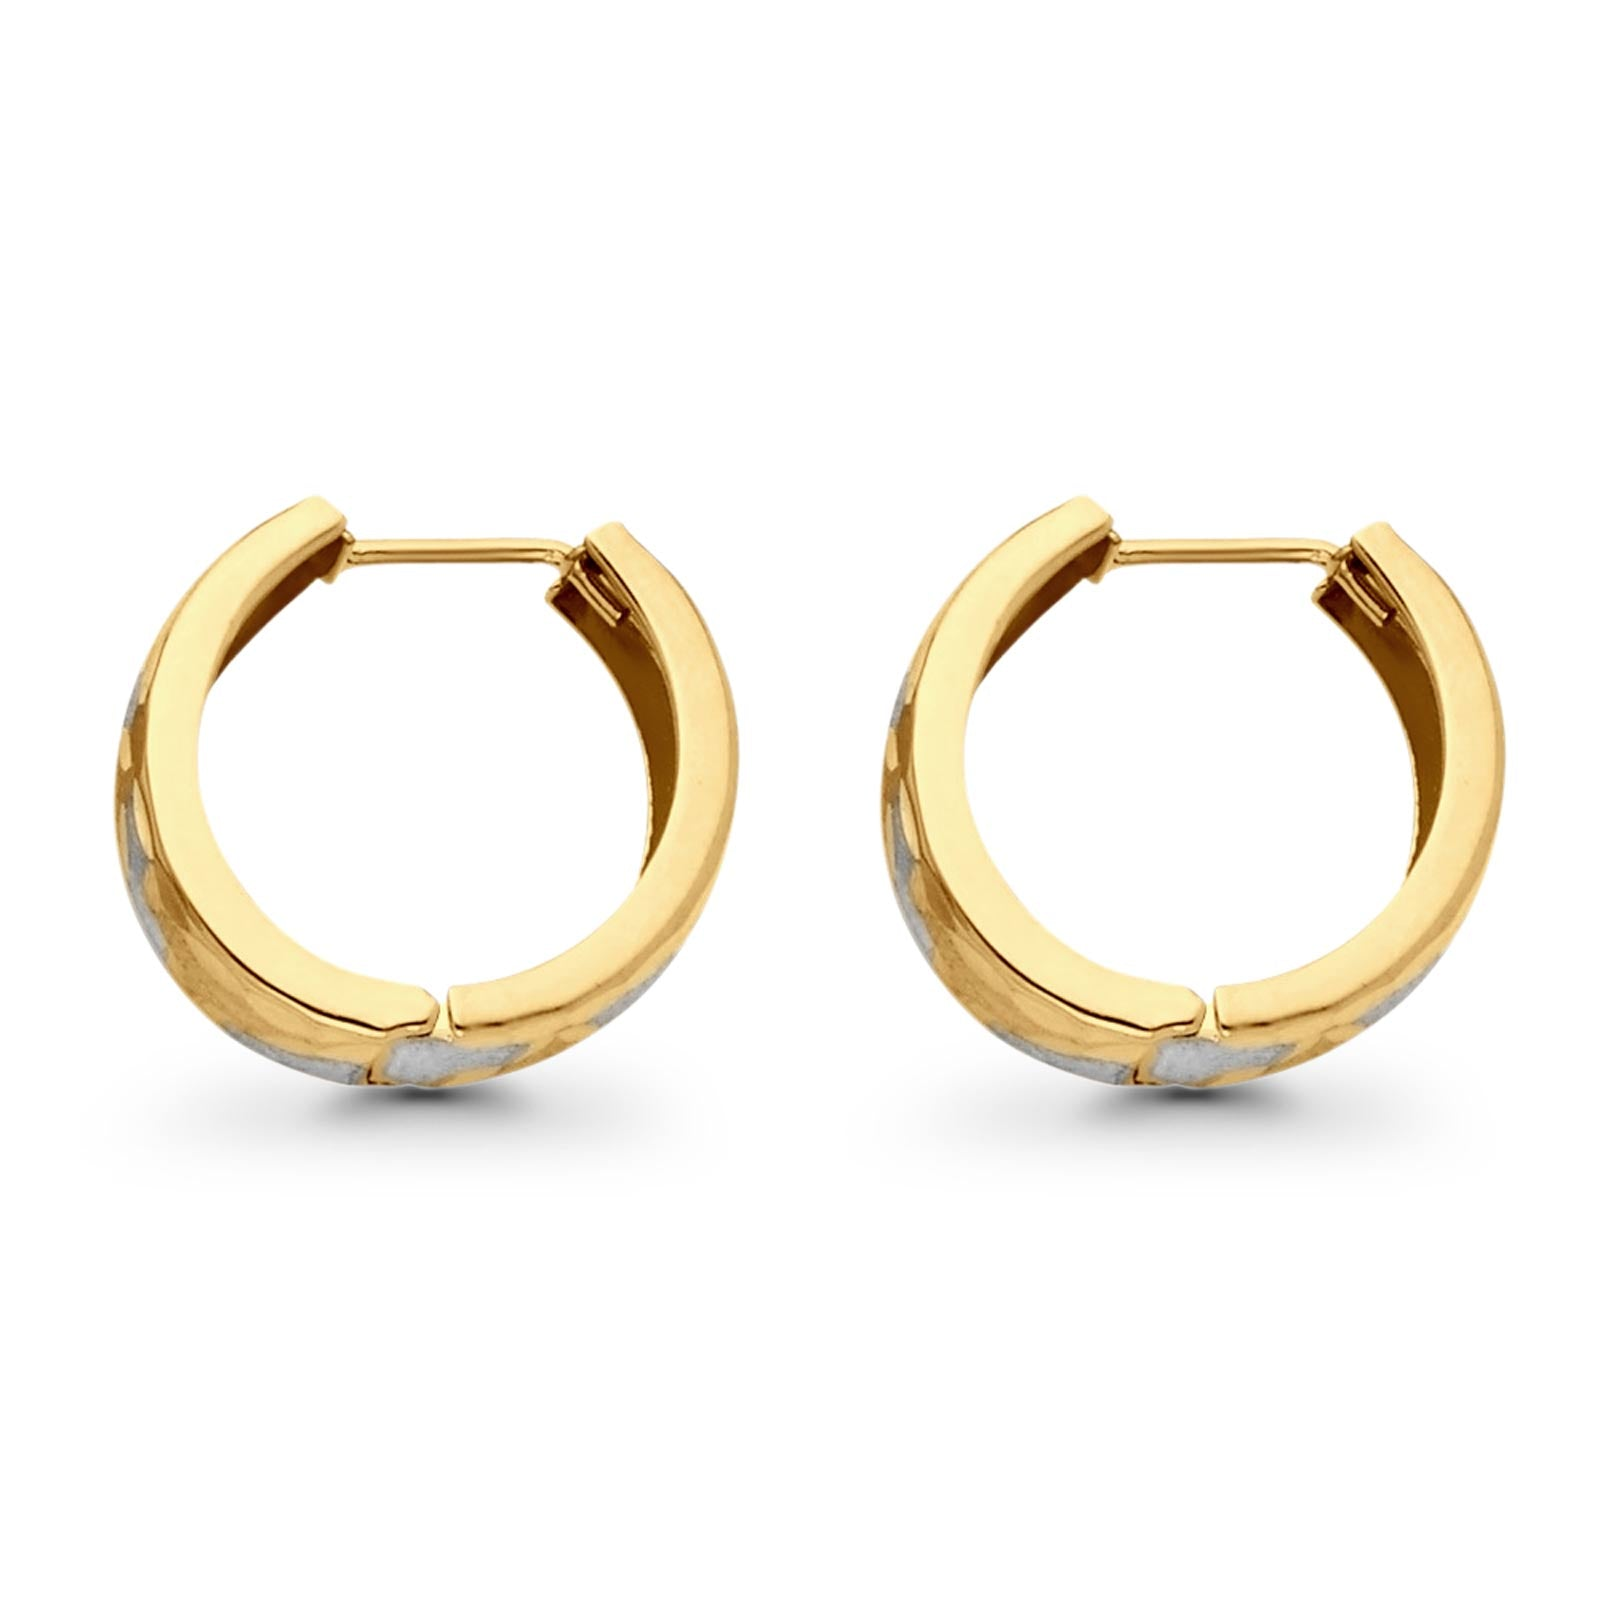 14K Stylish Two Tone Gold Real 5mm Huggies Earrings Hinged 2.2grams 15mm